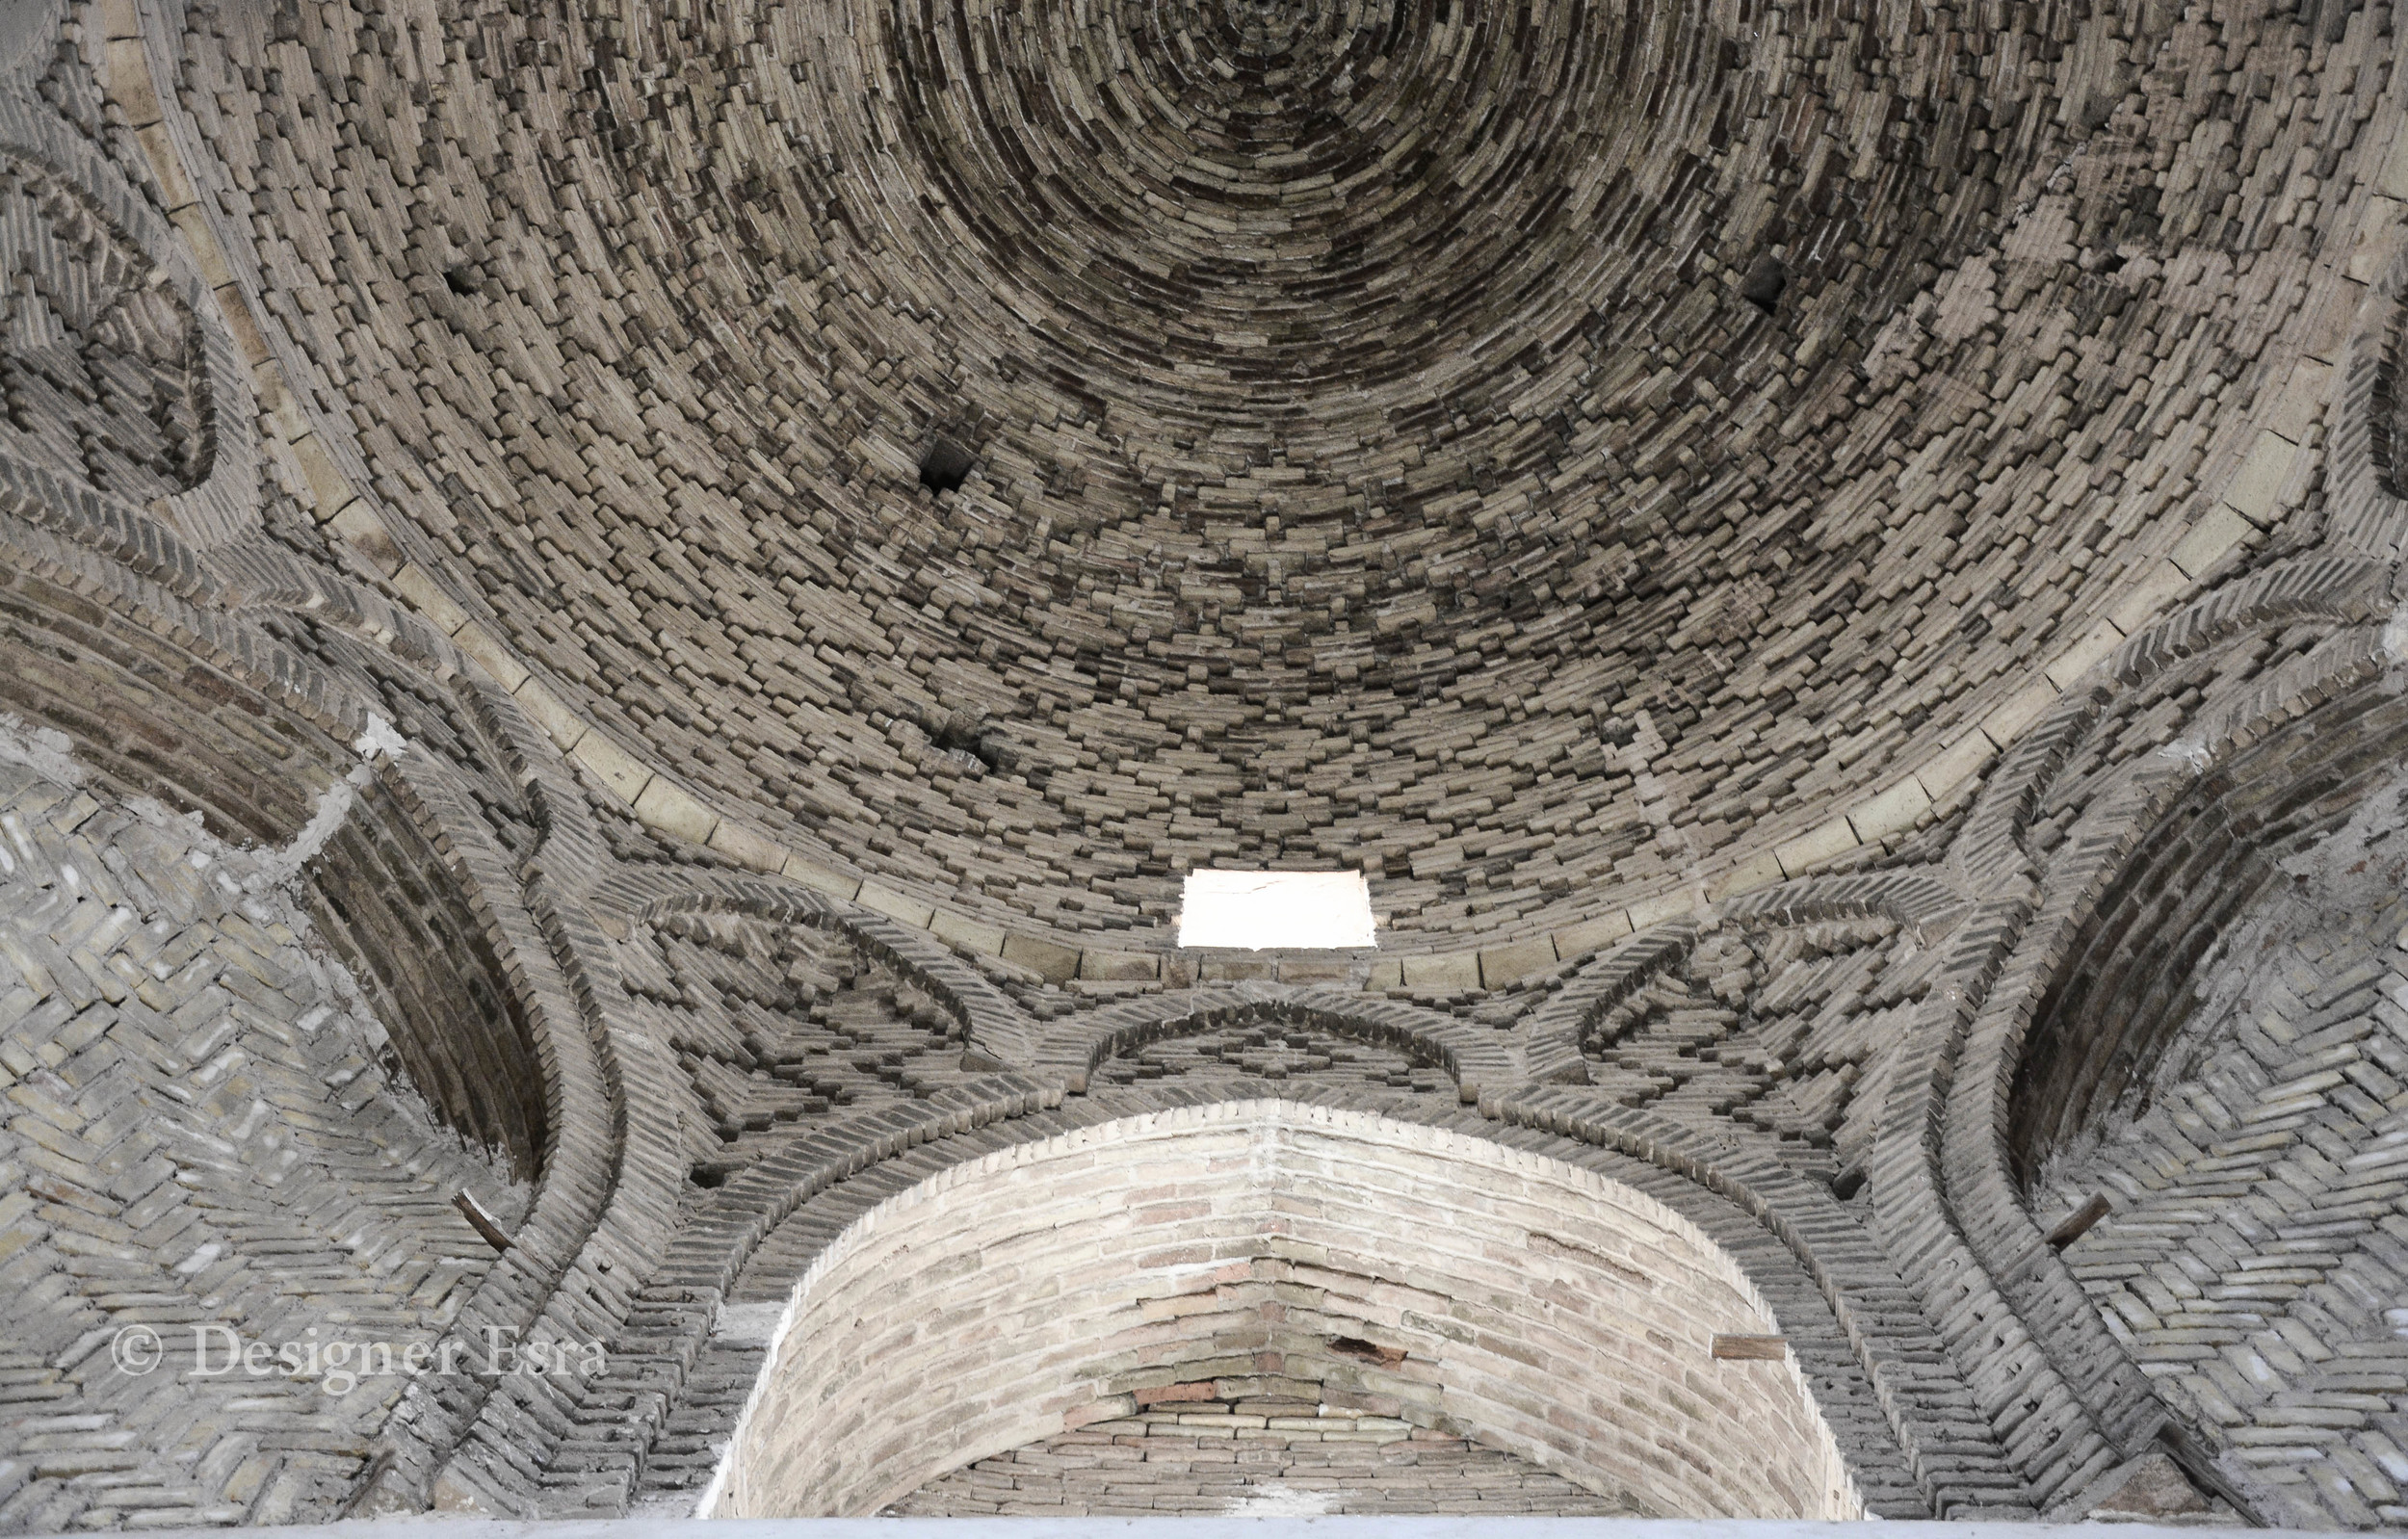 The ceiling in Jamea Mosque of Naein